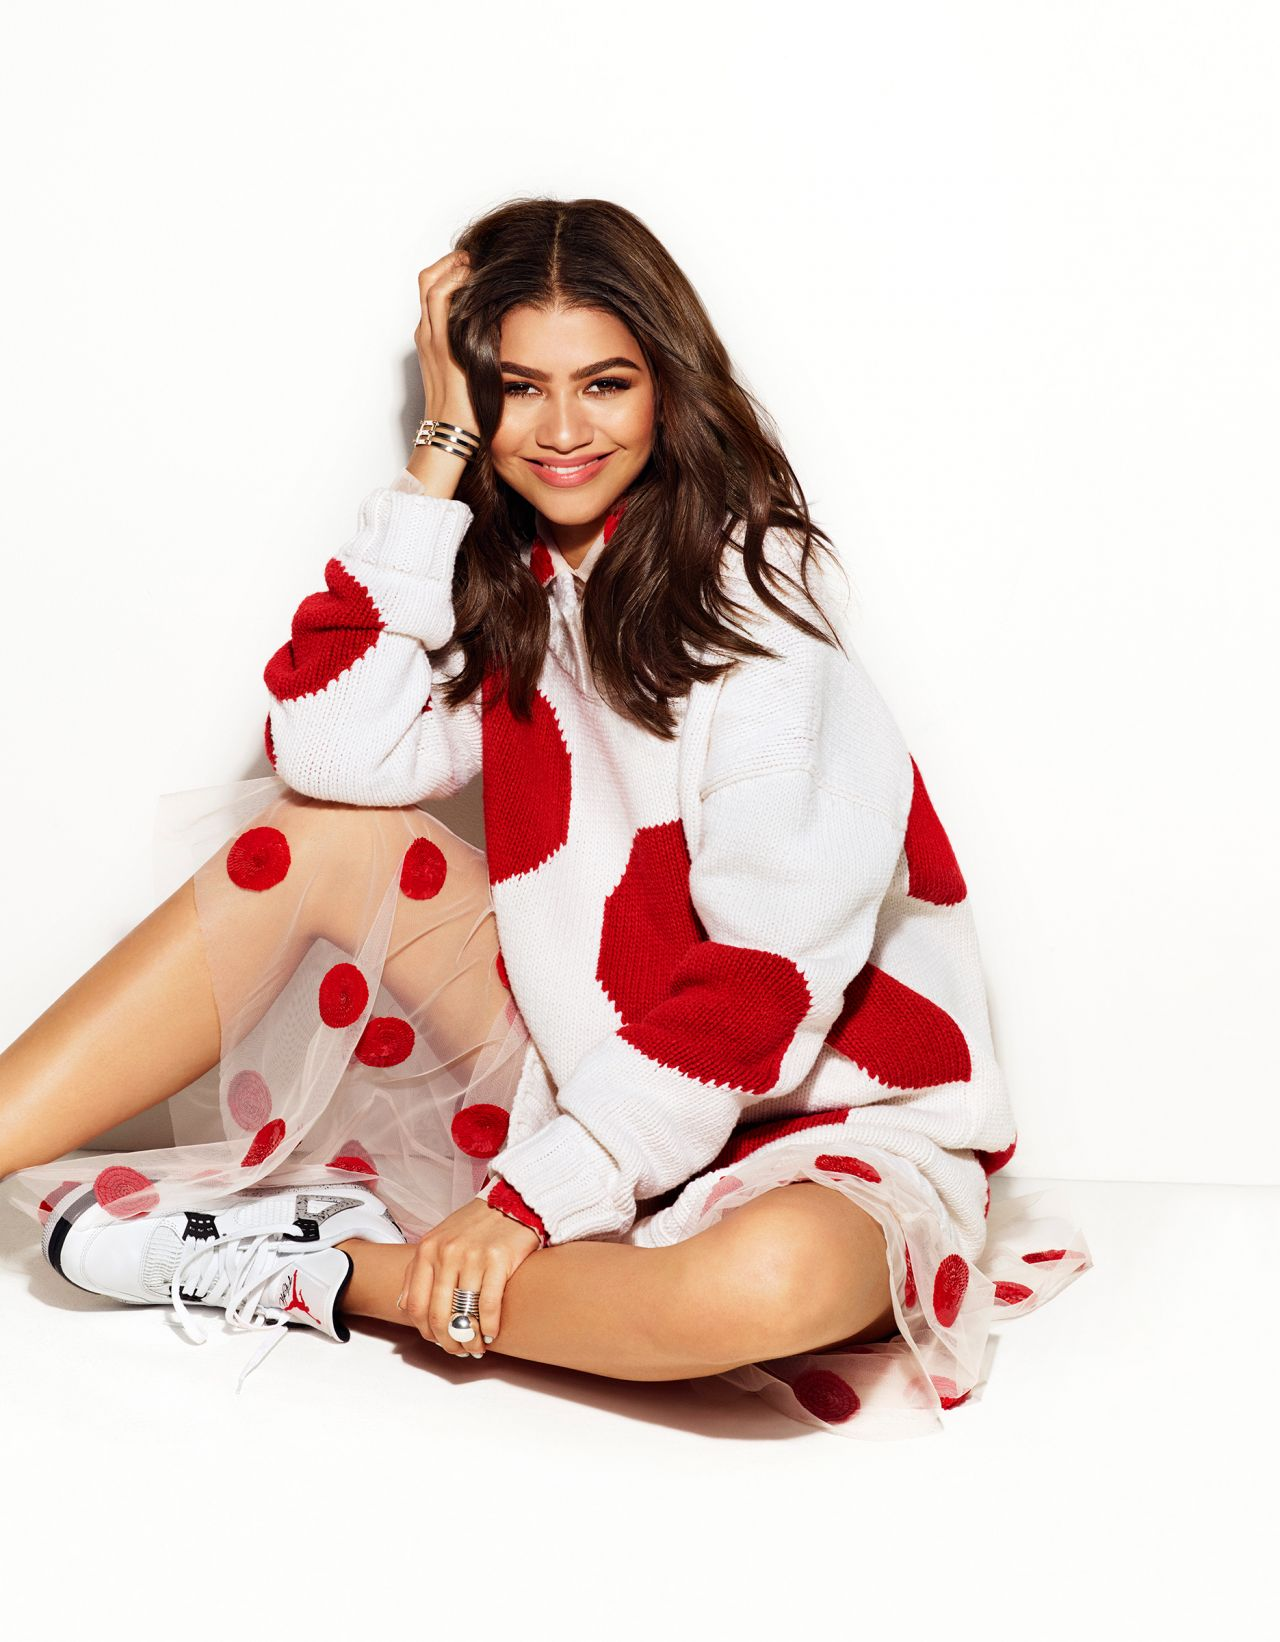 Zendaya Coleman - Photoshoot for Seventeen Magazine ...